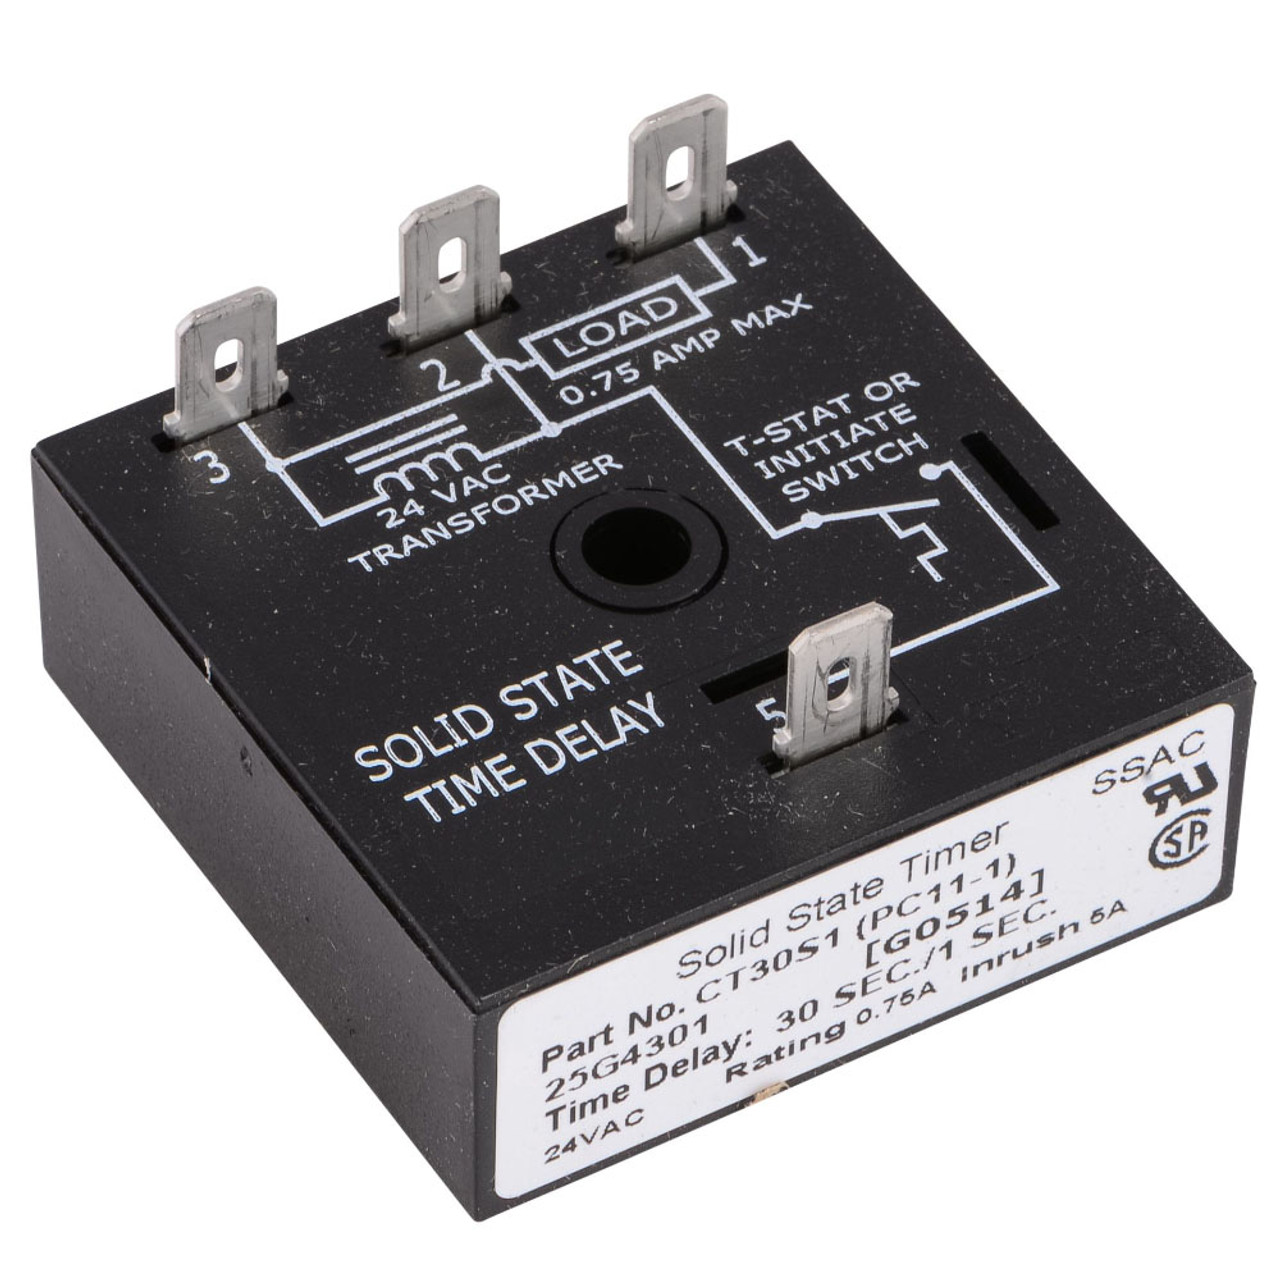 25G43 - Time Delay Relay